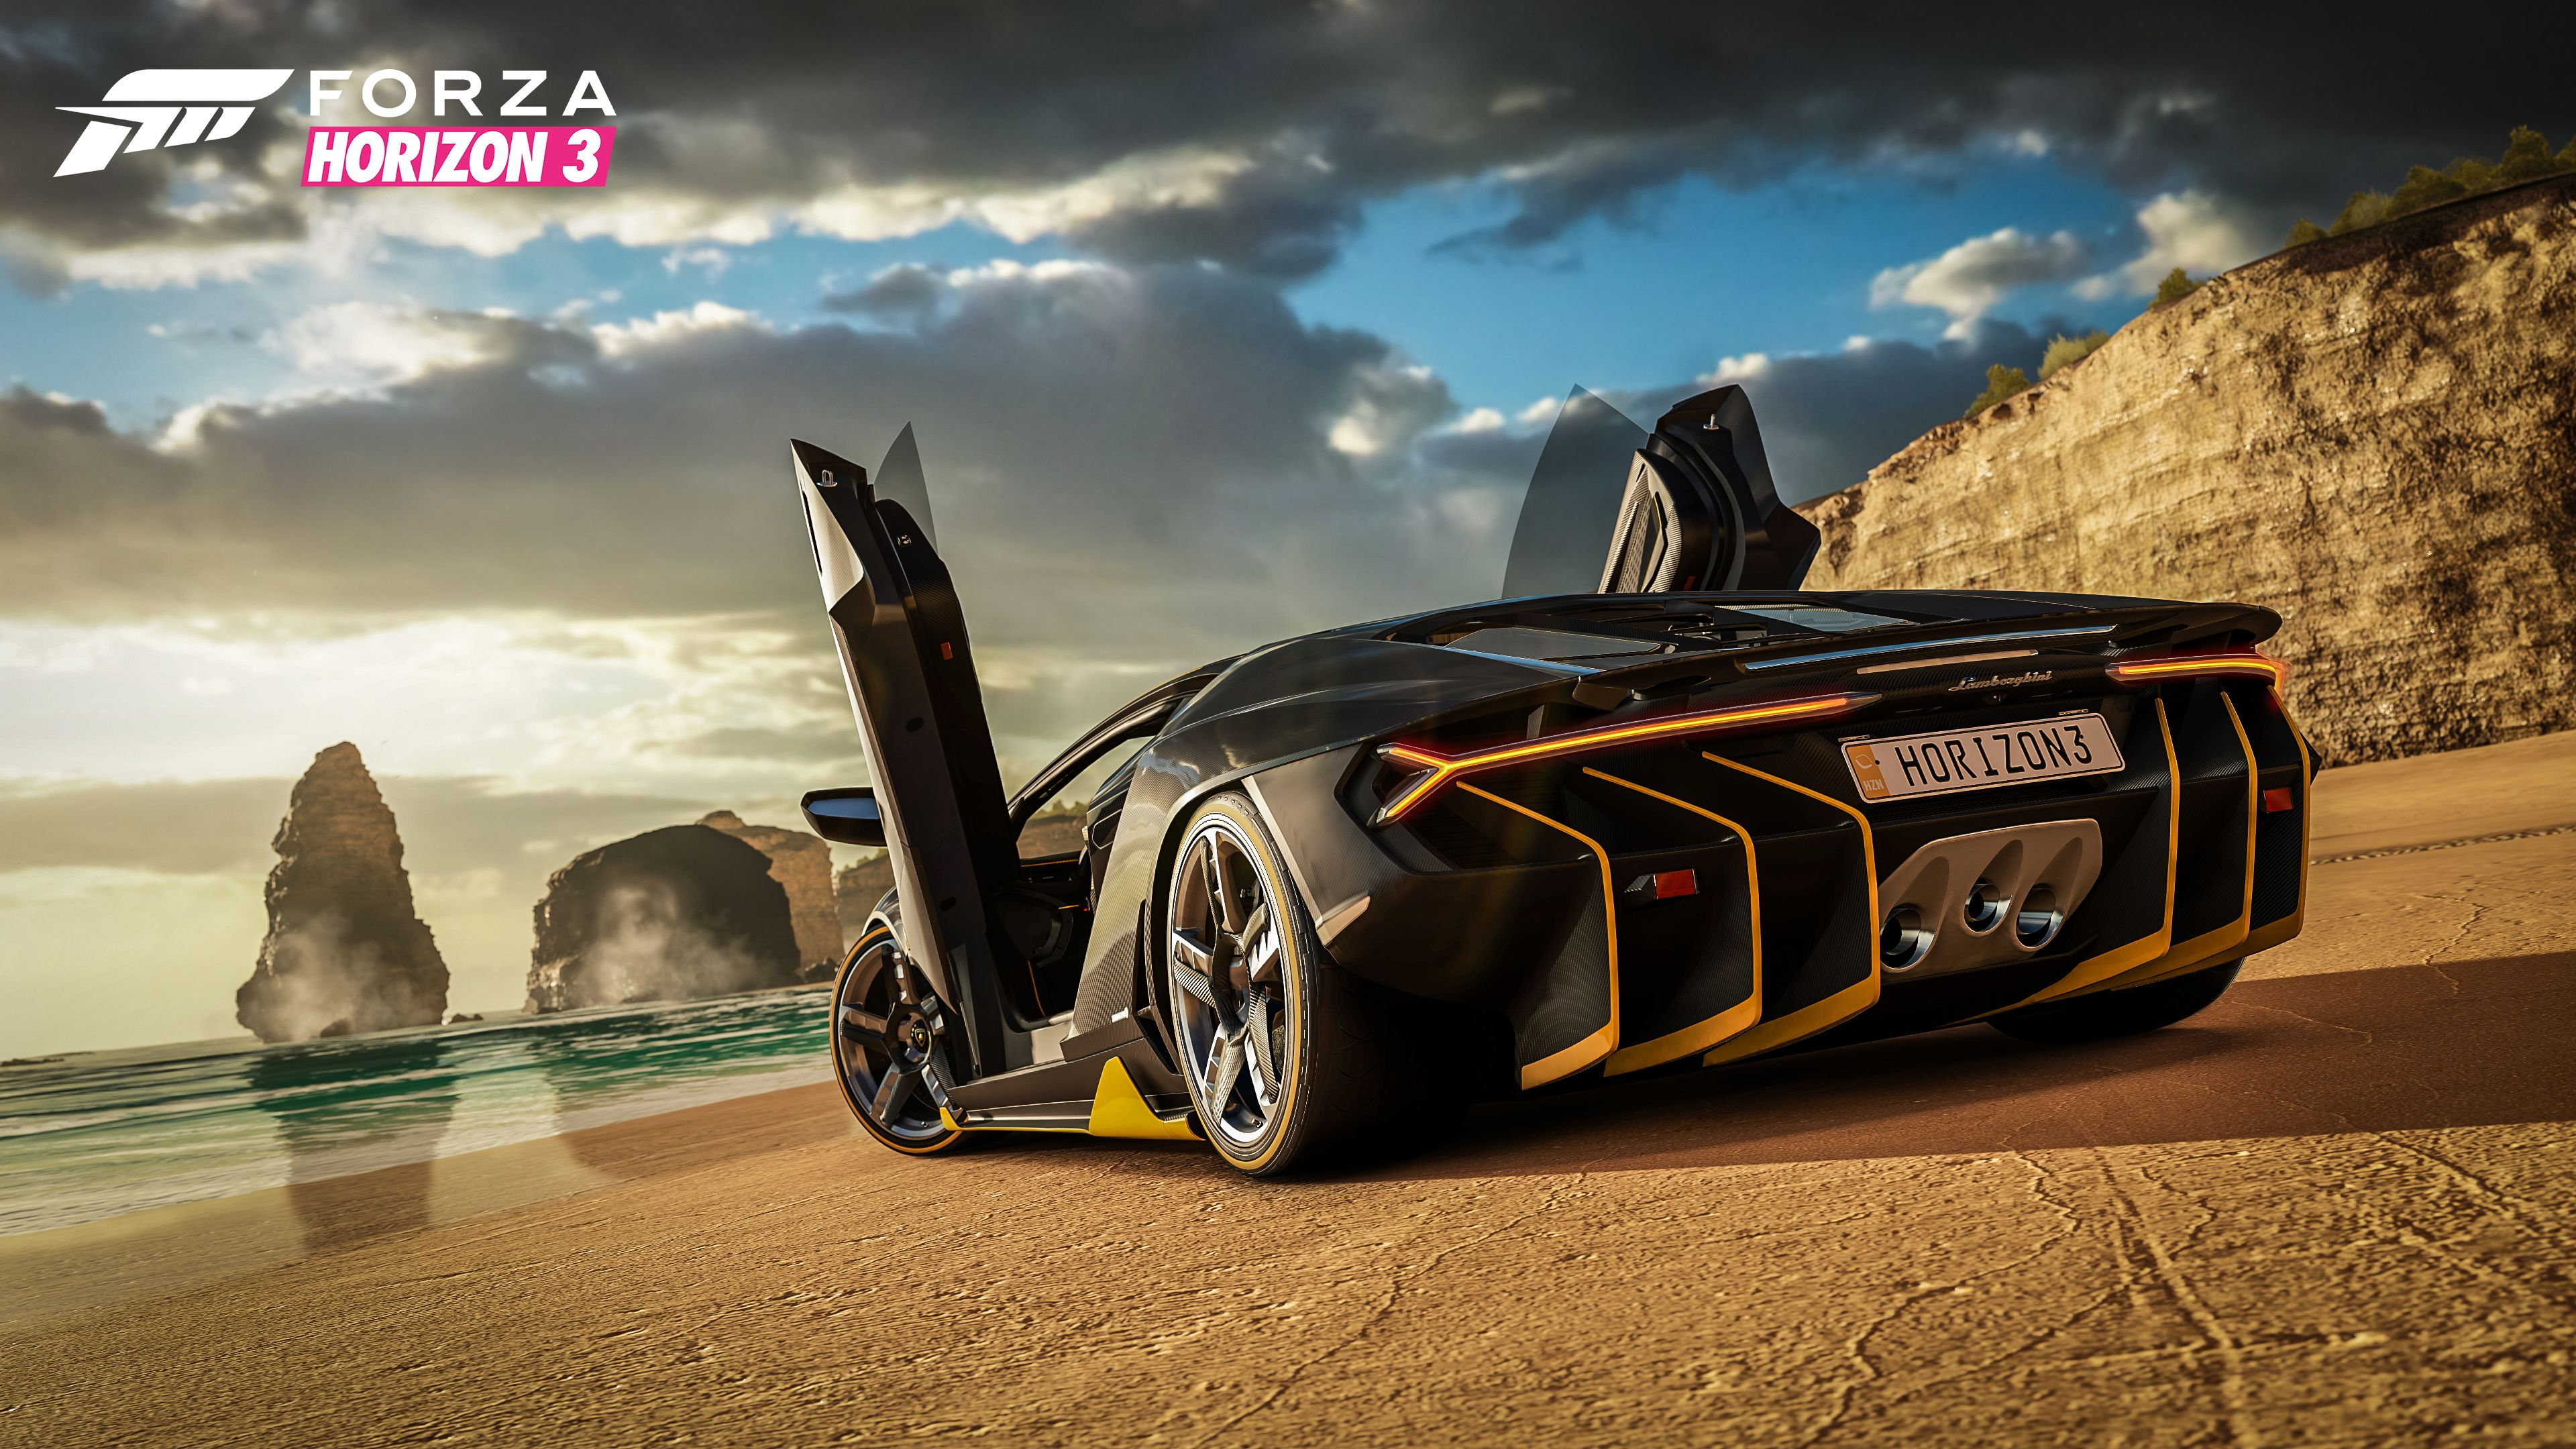 Forza Horizon 3, Playground Games